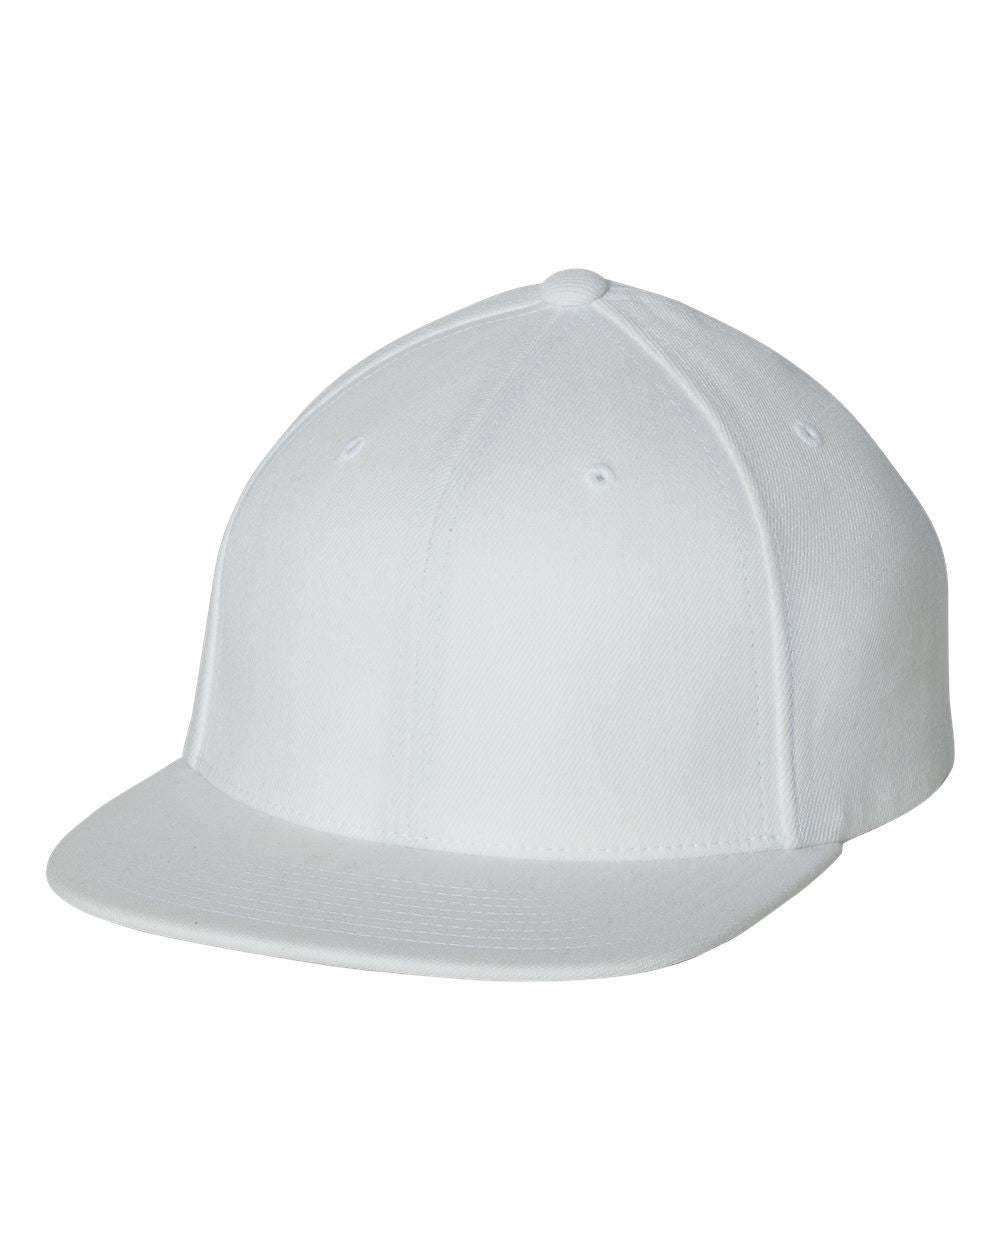 110F - One Ten Flat Bill Snapback Cap